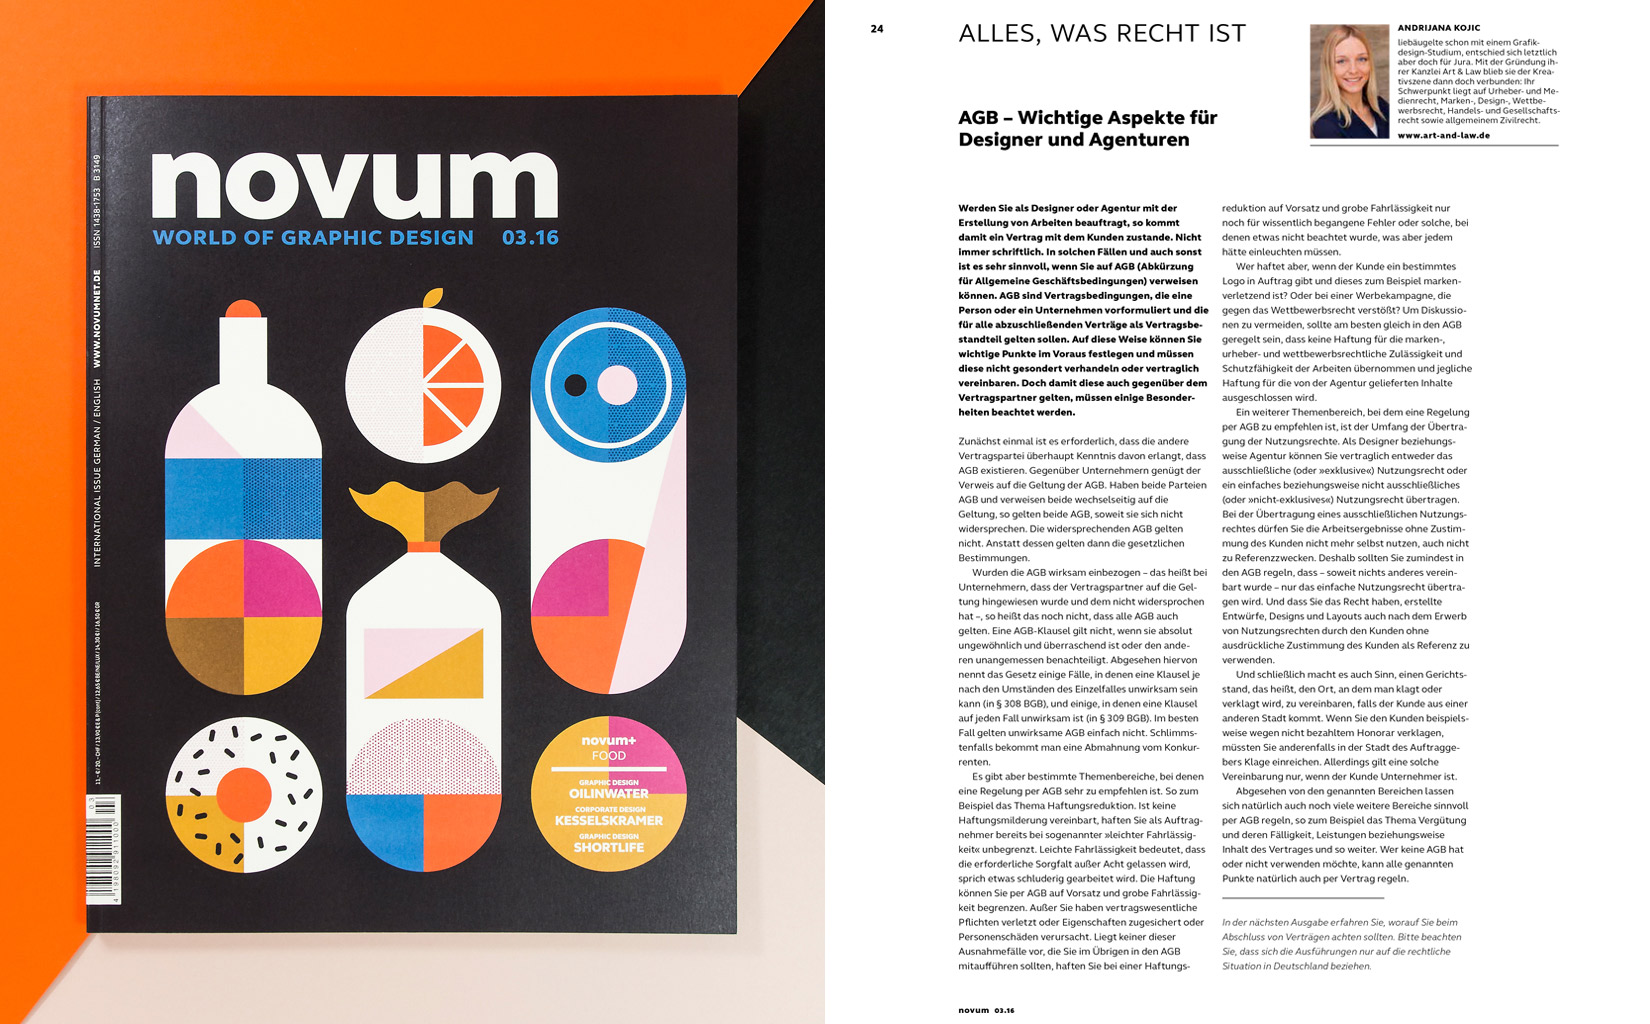 novum-world-of-graphic-design-2016-03